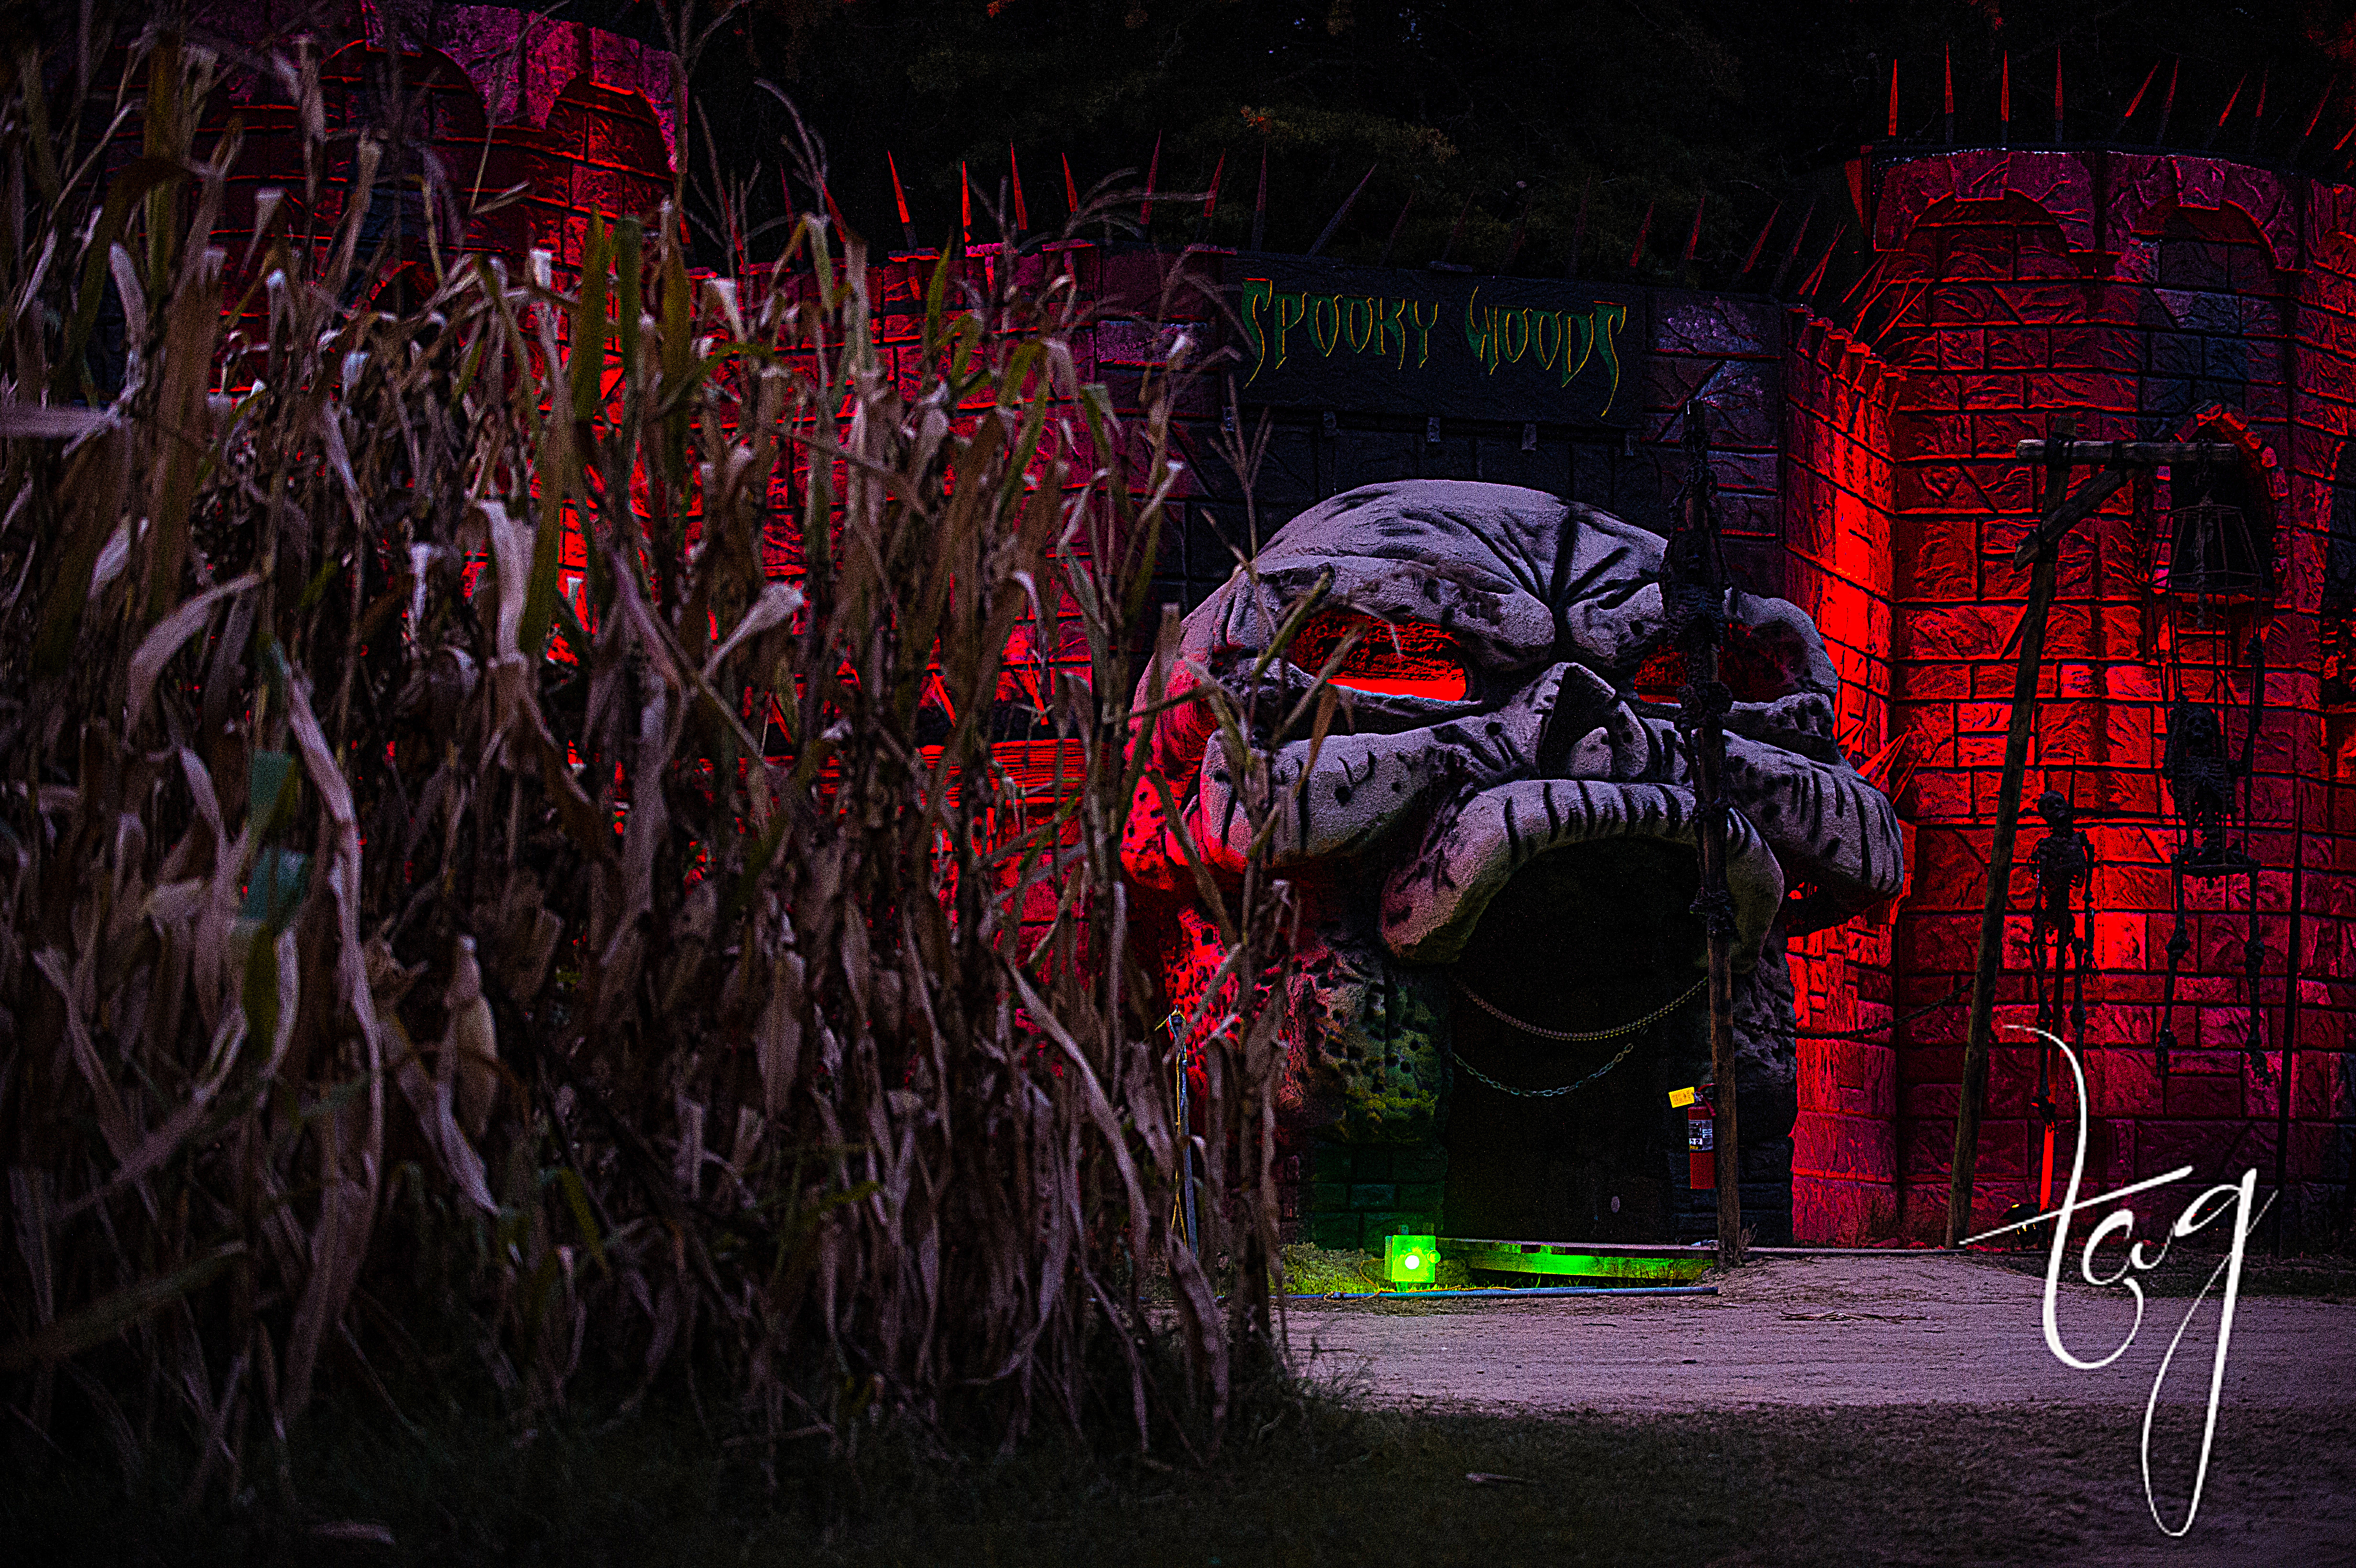 Subway - Picture of Kersey Valley Spooky Woods, Archdale - TripAdvisor